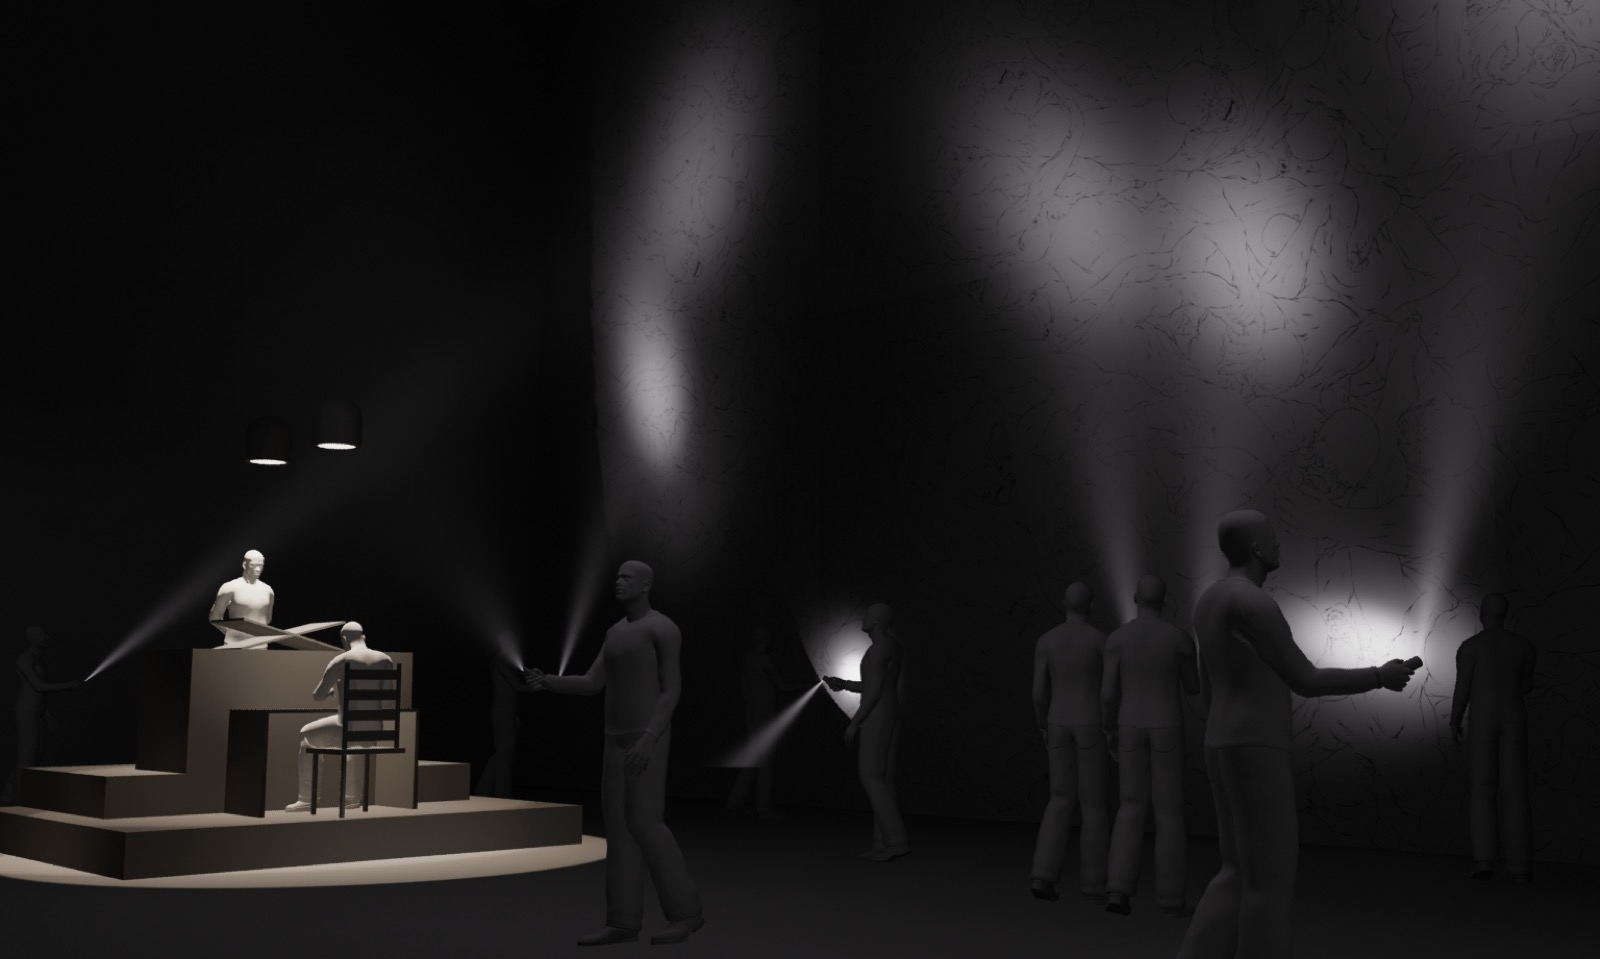 2. Simulated Installation View